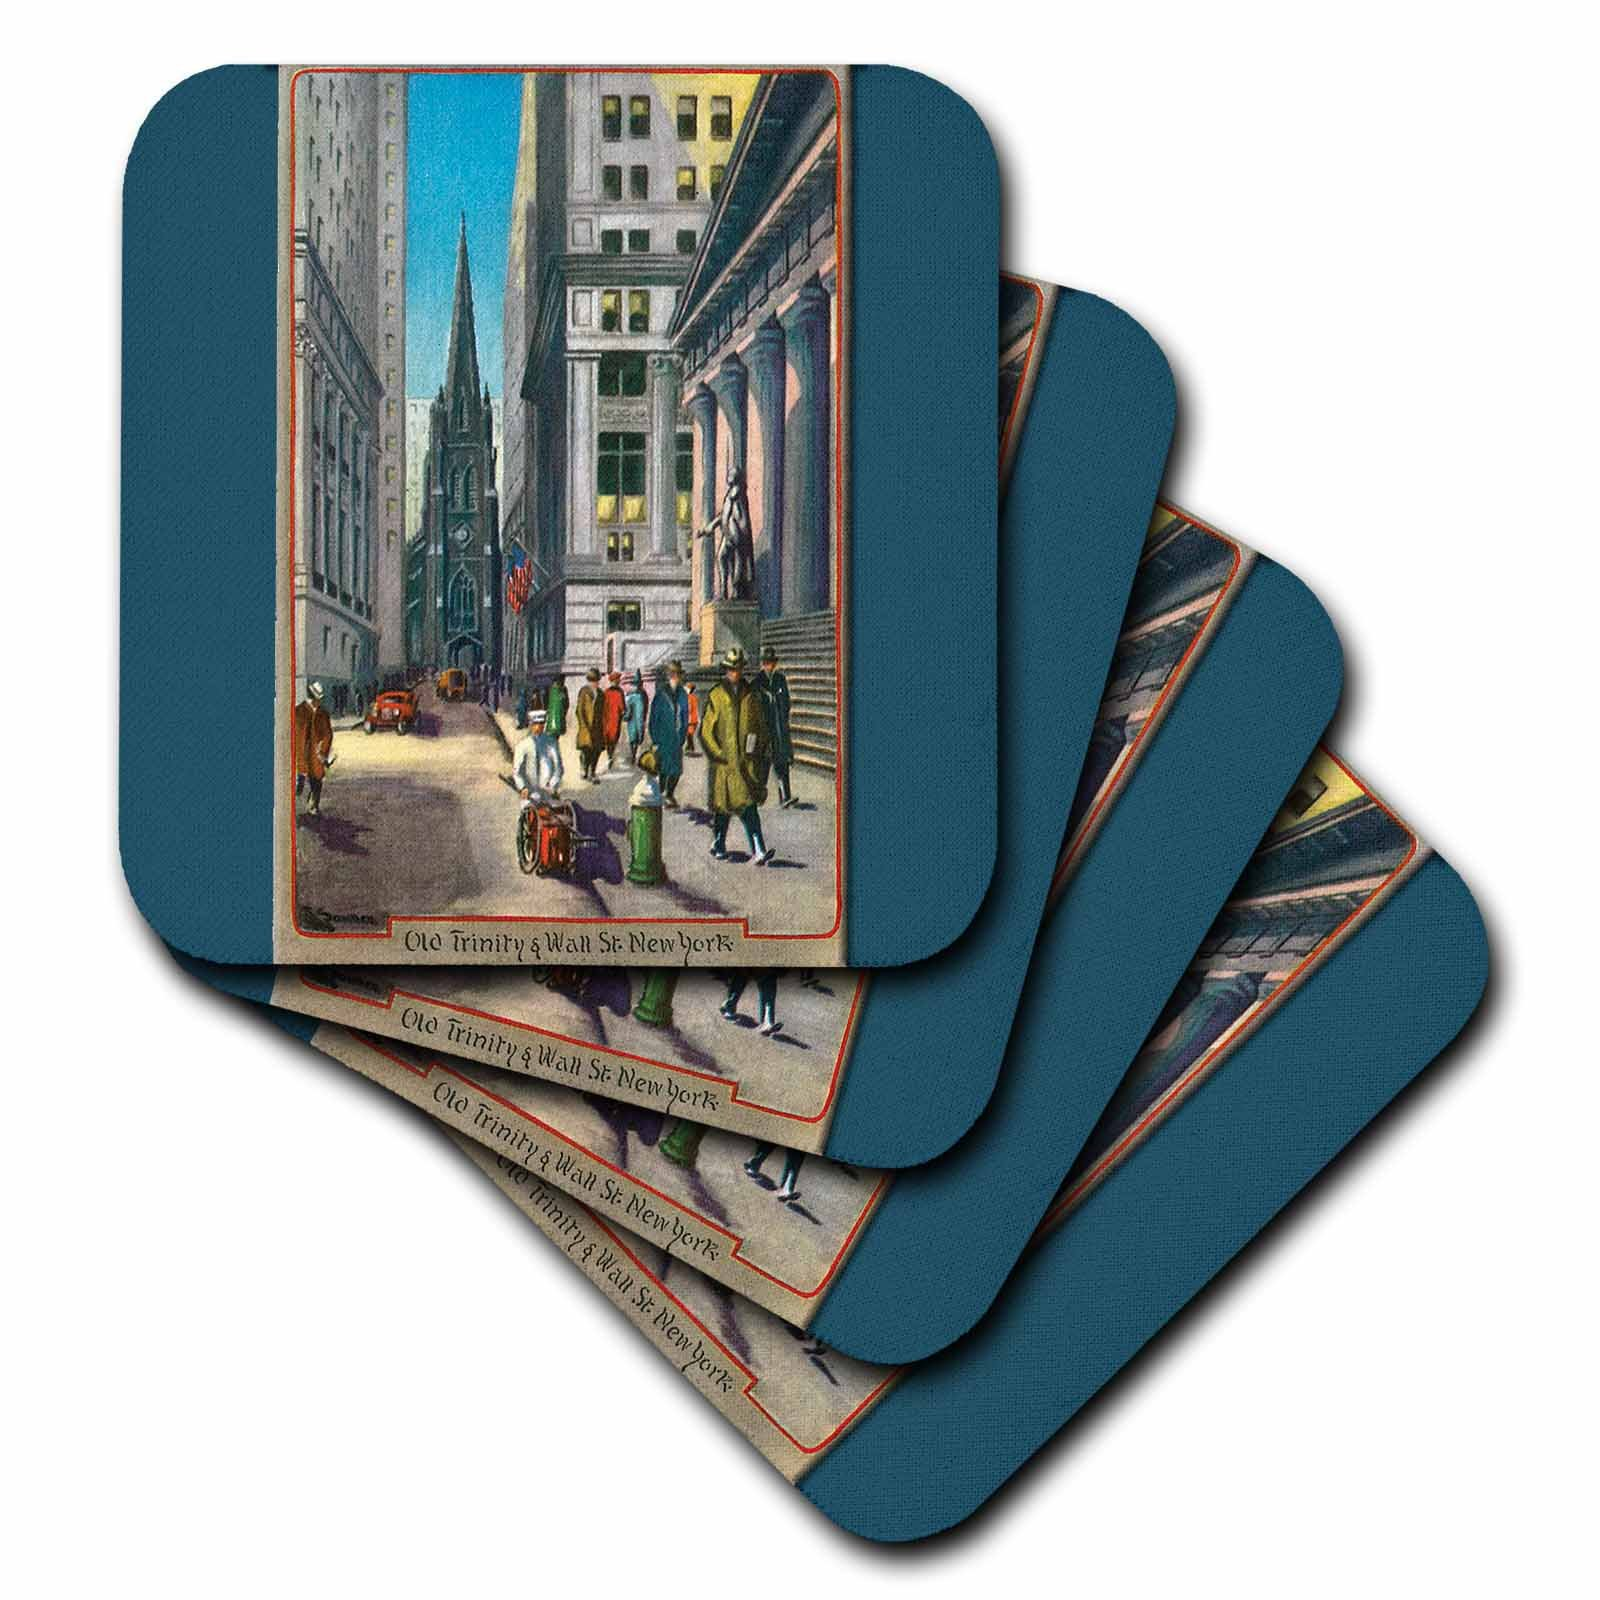 3dRose Old Trinity and Wall Street New York City - Soft Coasters, set of 4 (cst_170143_1)